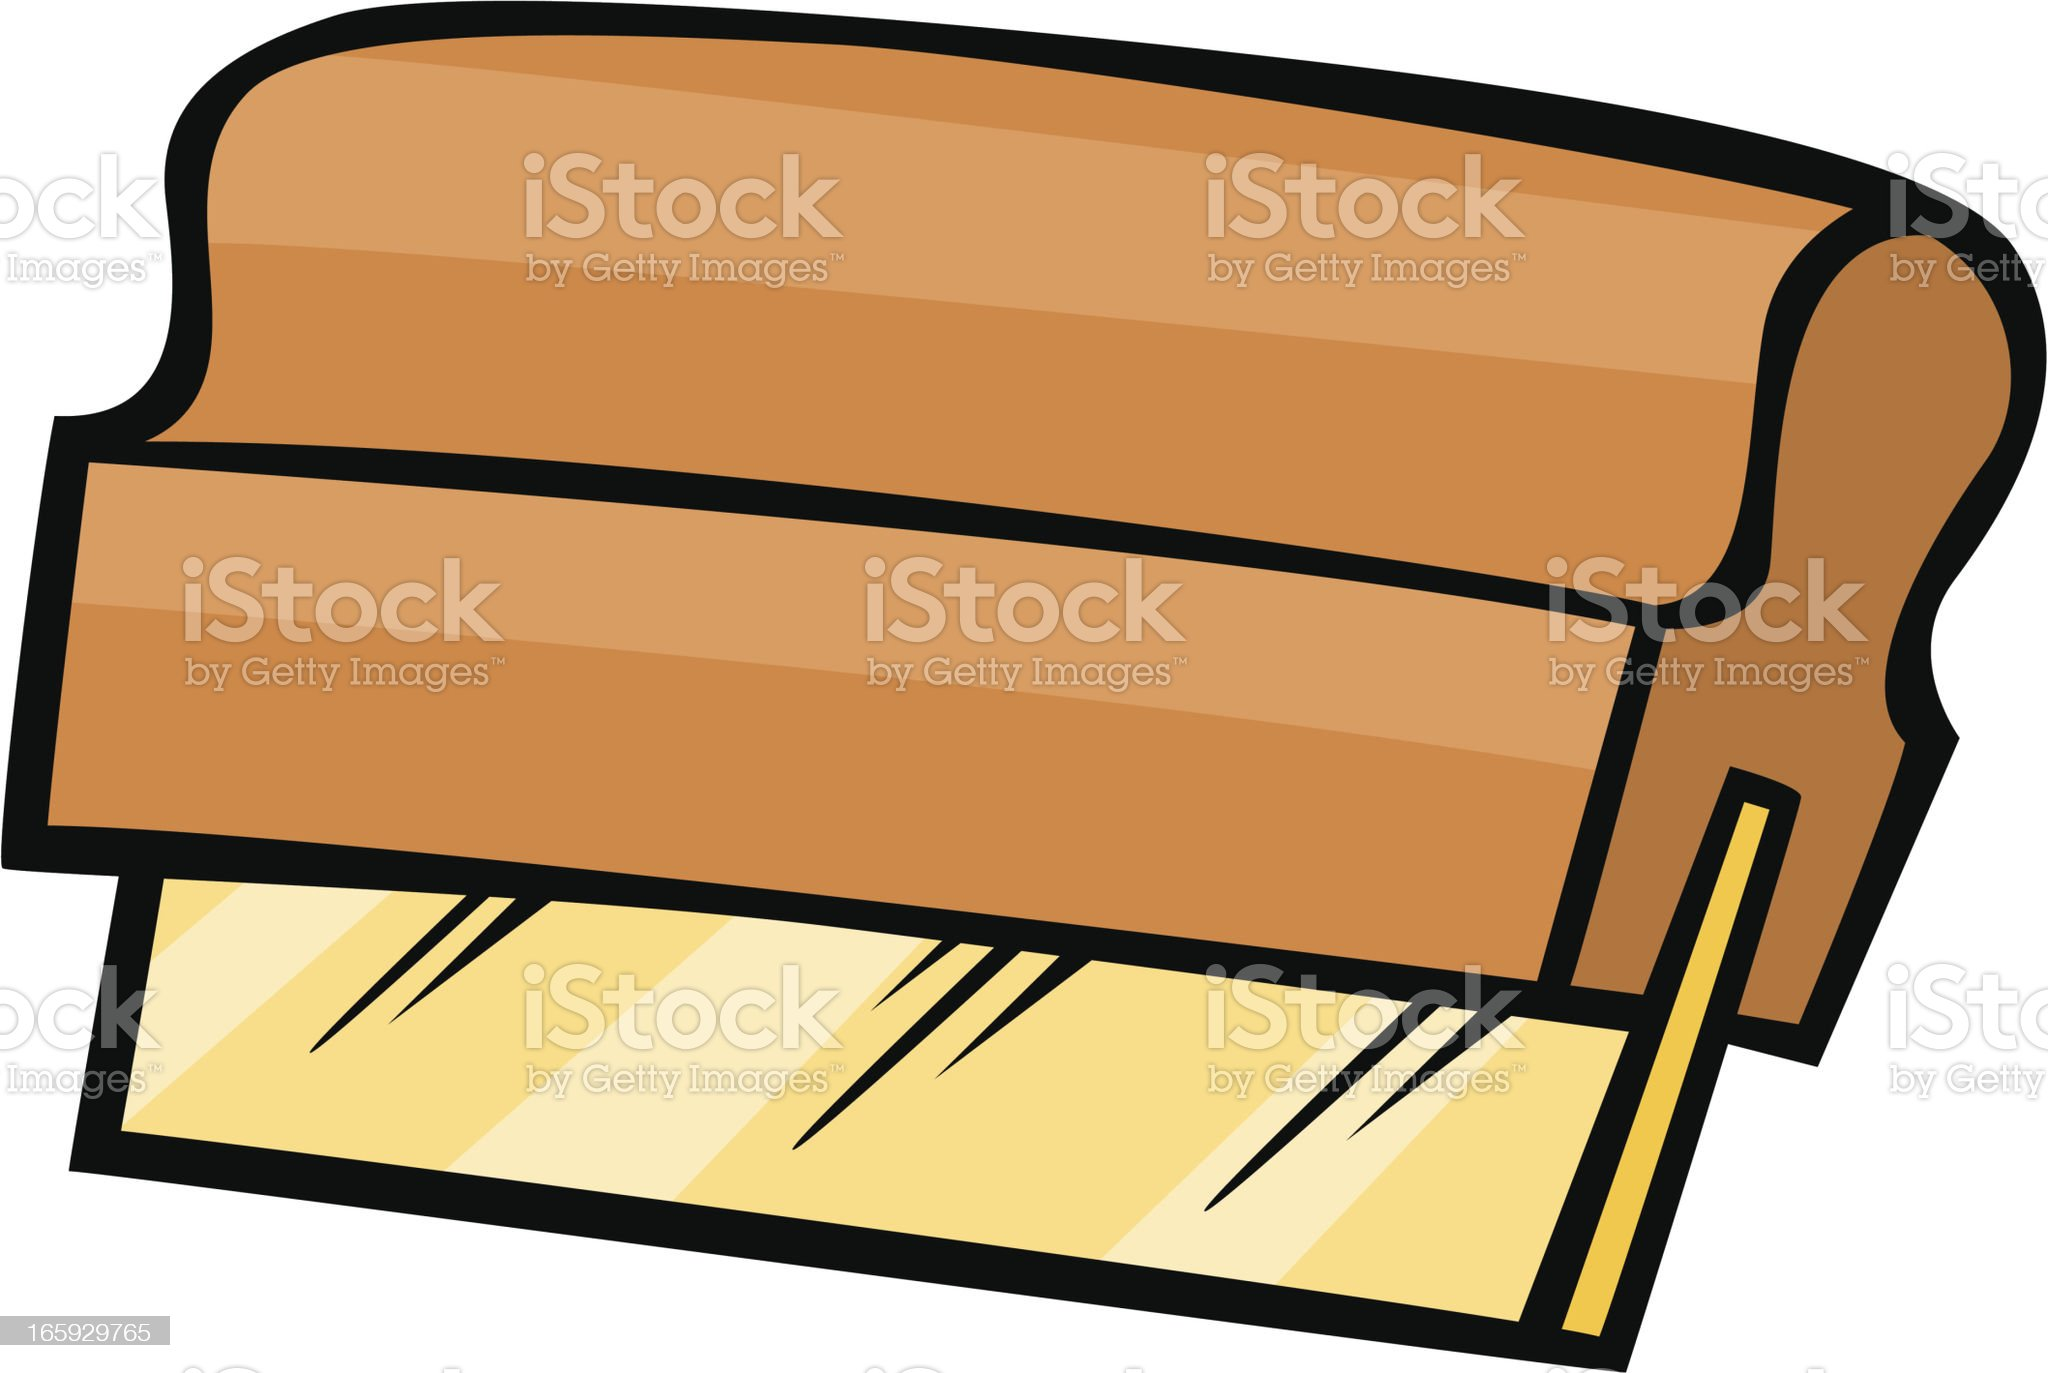 screen printing squeegee royalty-free stock vector art